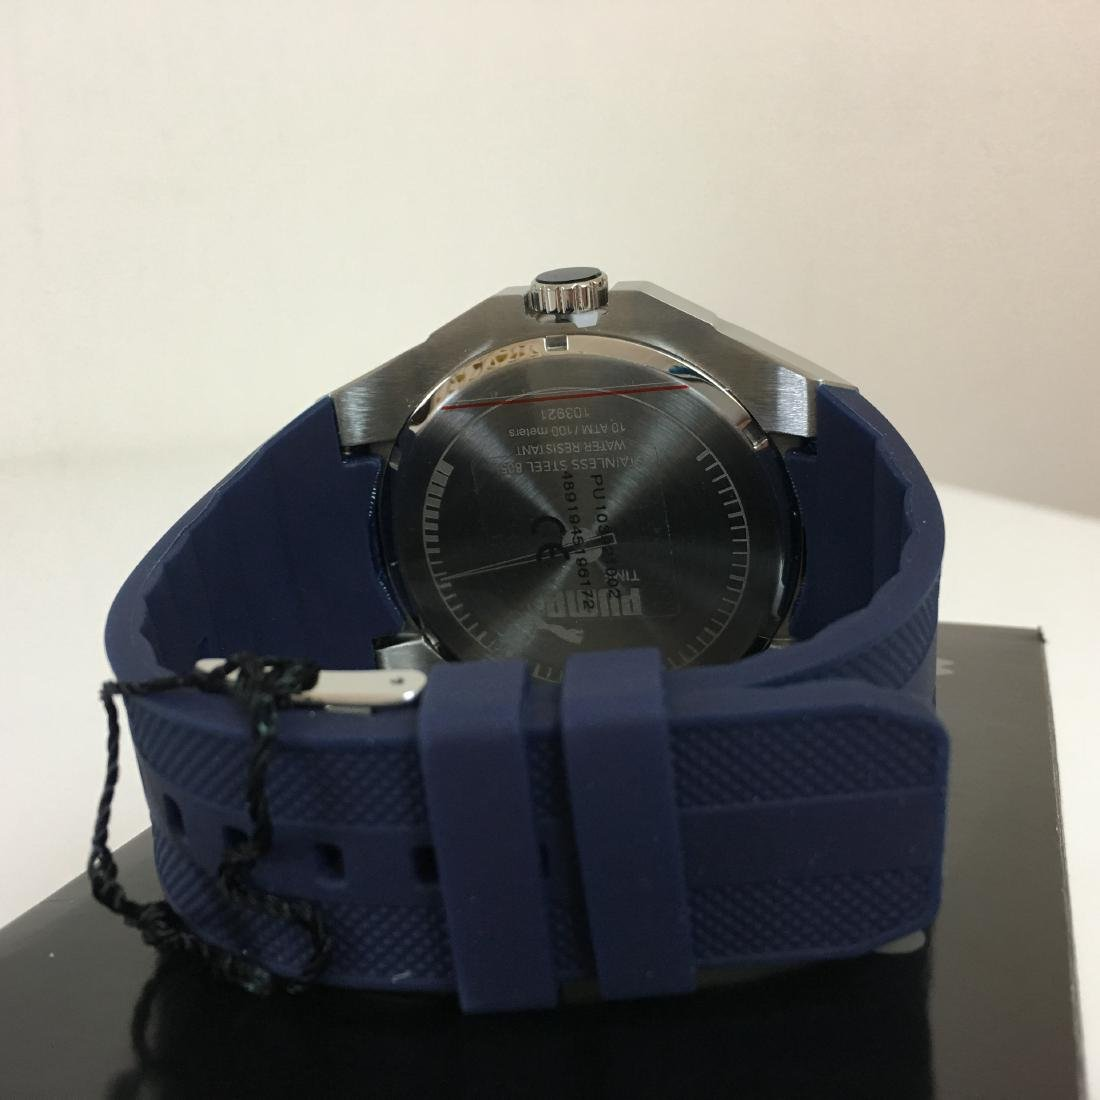 PUMA Iconic Blue Silicone Display Watch With Box - 6